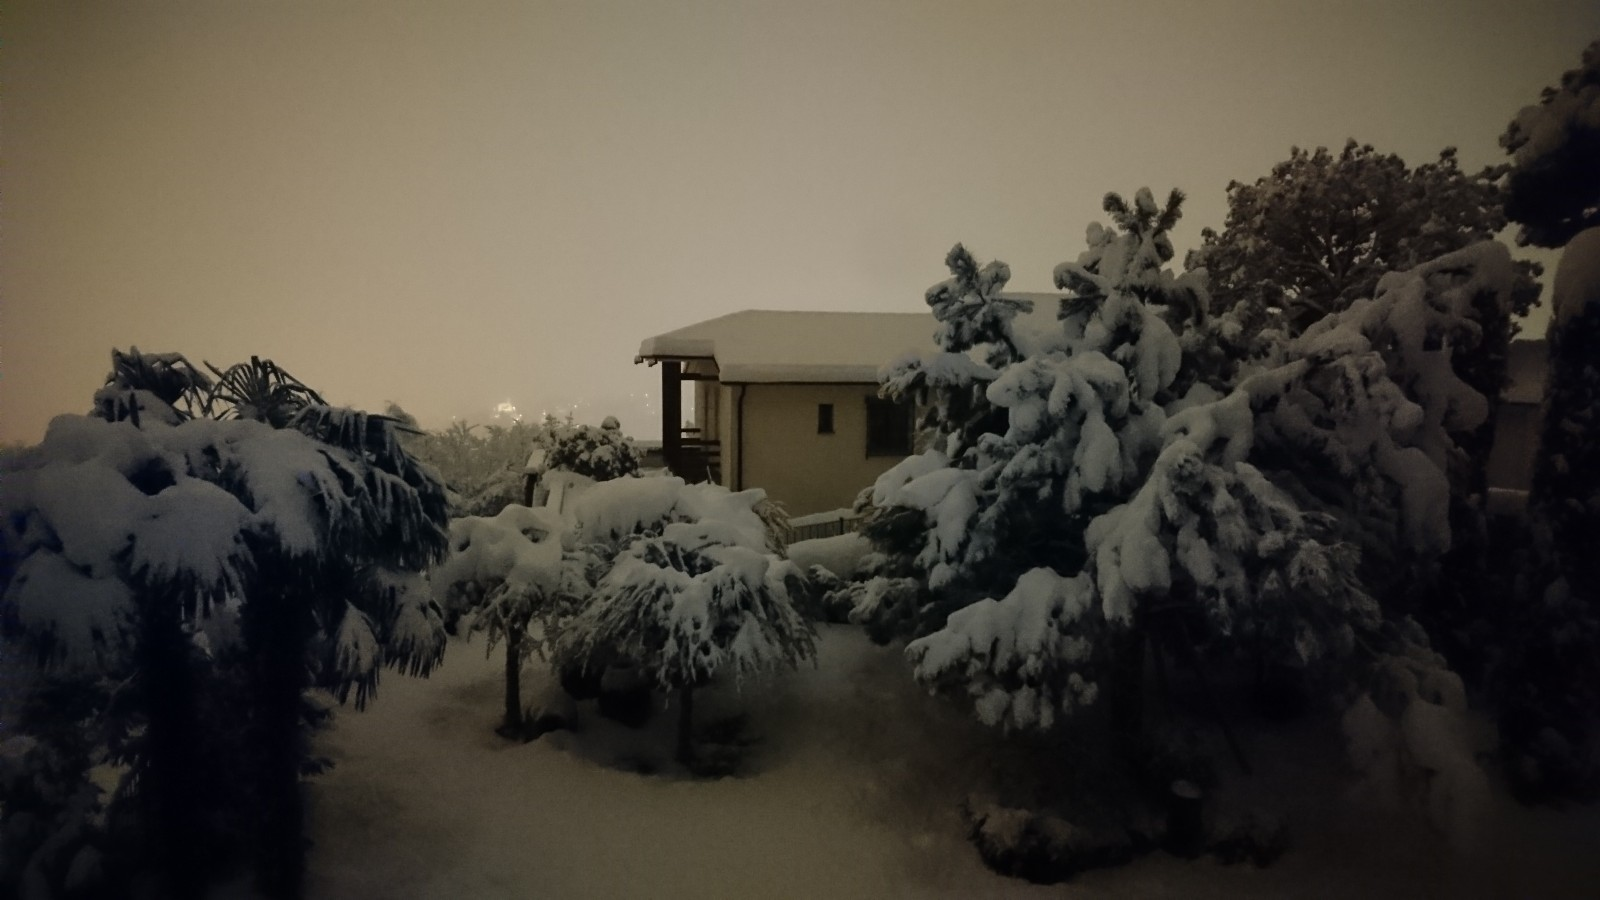 Pines, olive trees and palms covered by heavy snow. Picture taken during night time.